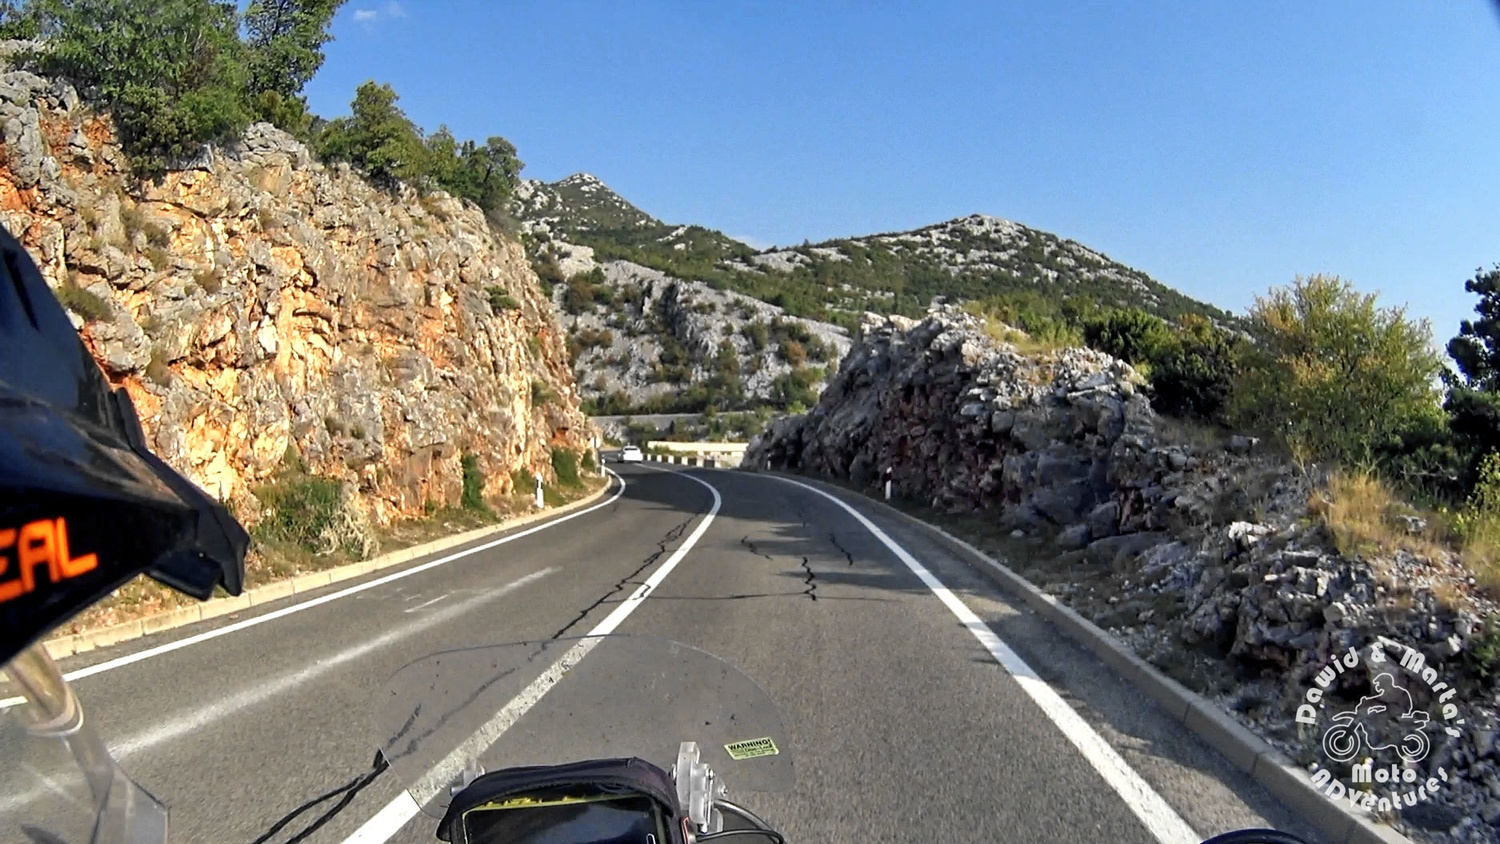 The Adriatic Highway sometimes leaves the sea coastline and meanders between the mountains